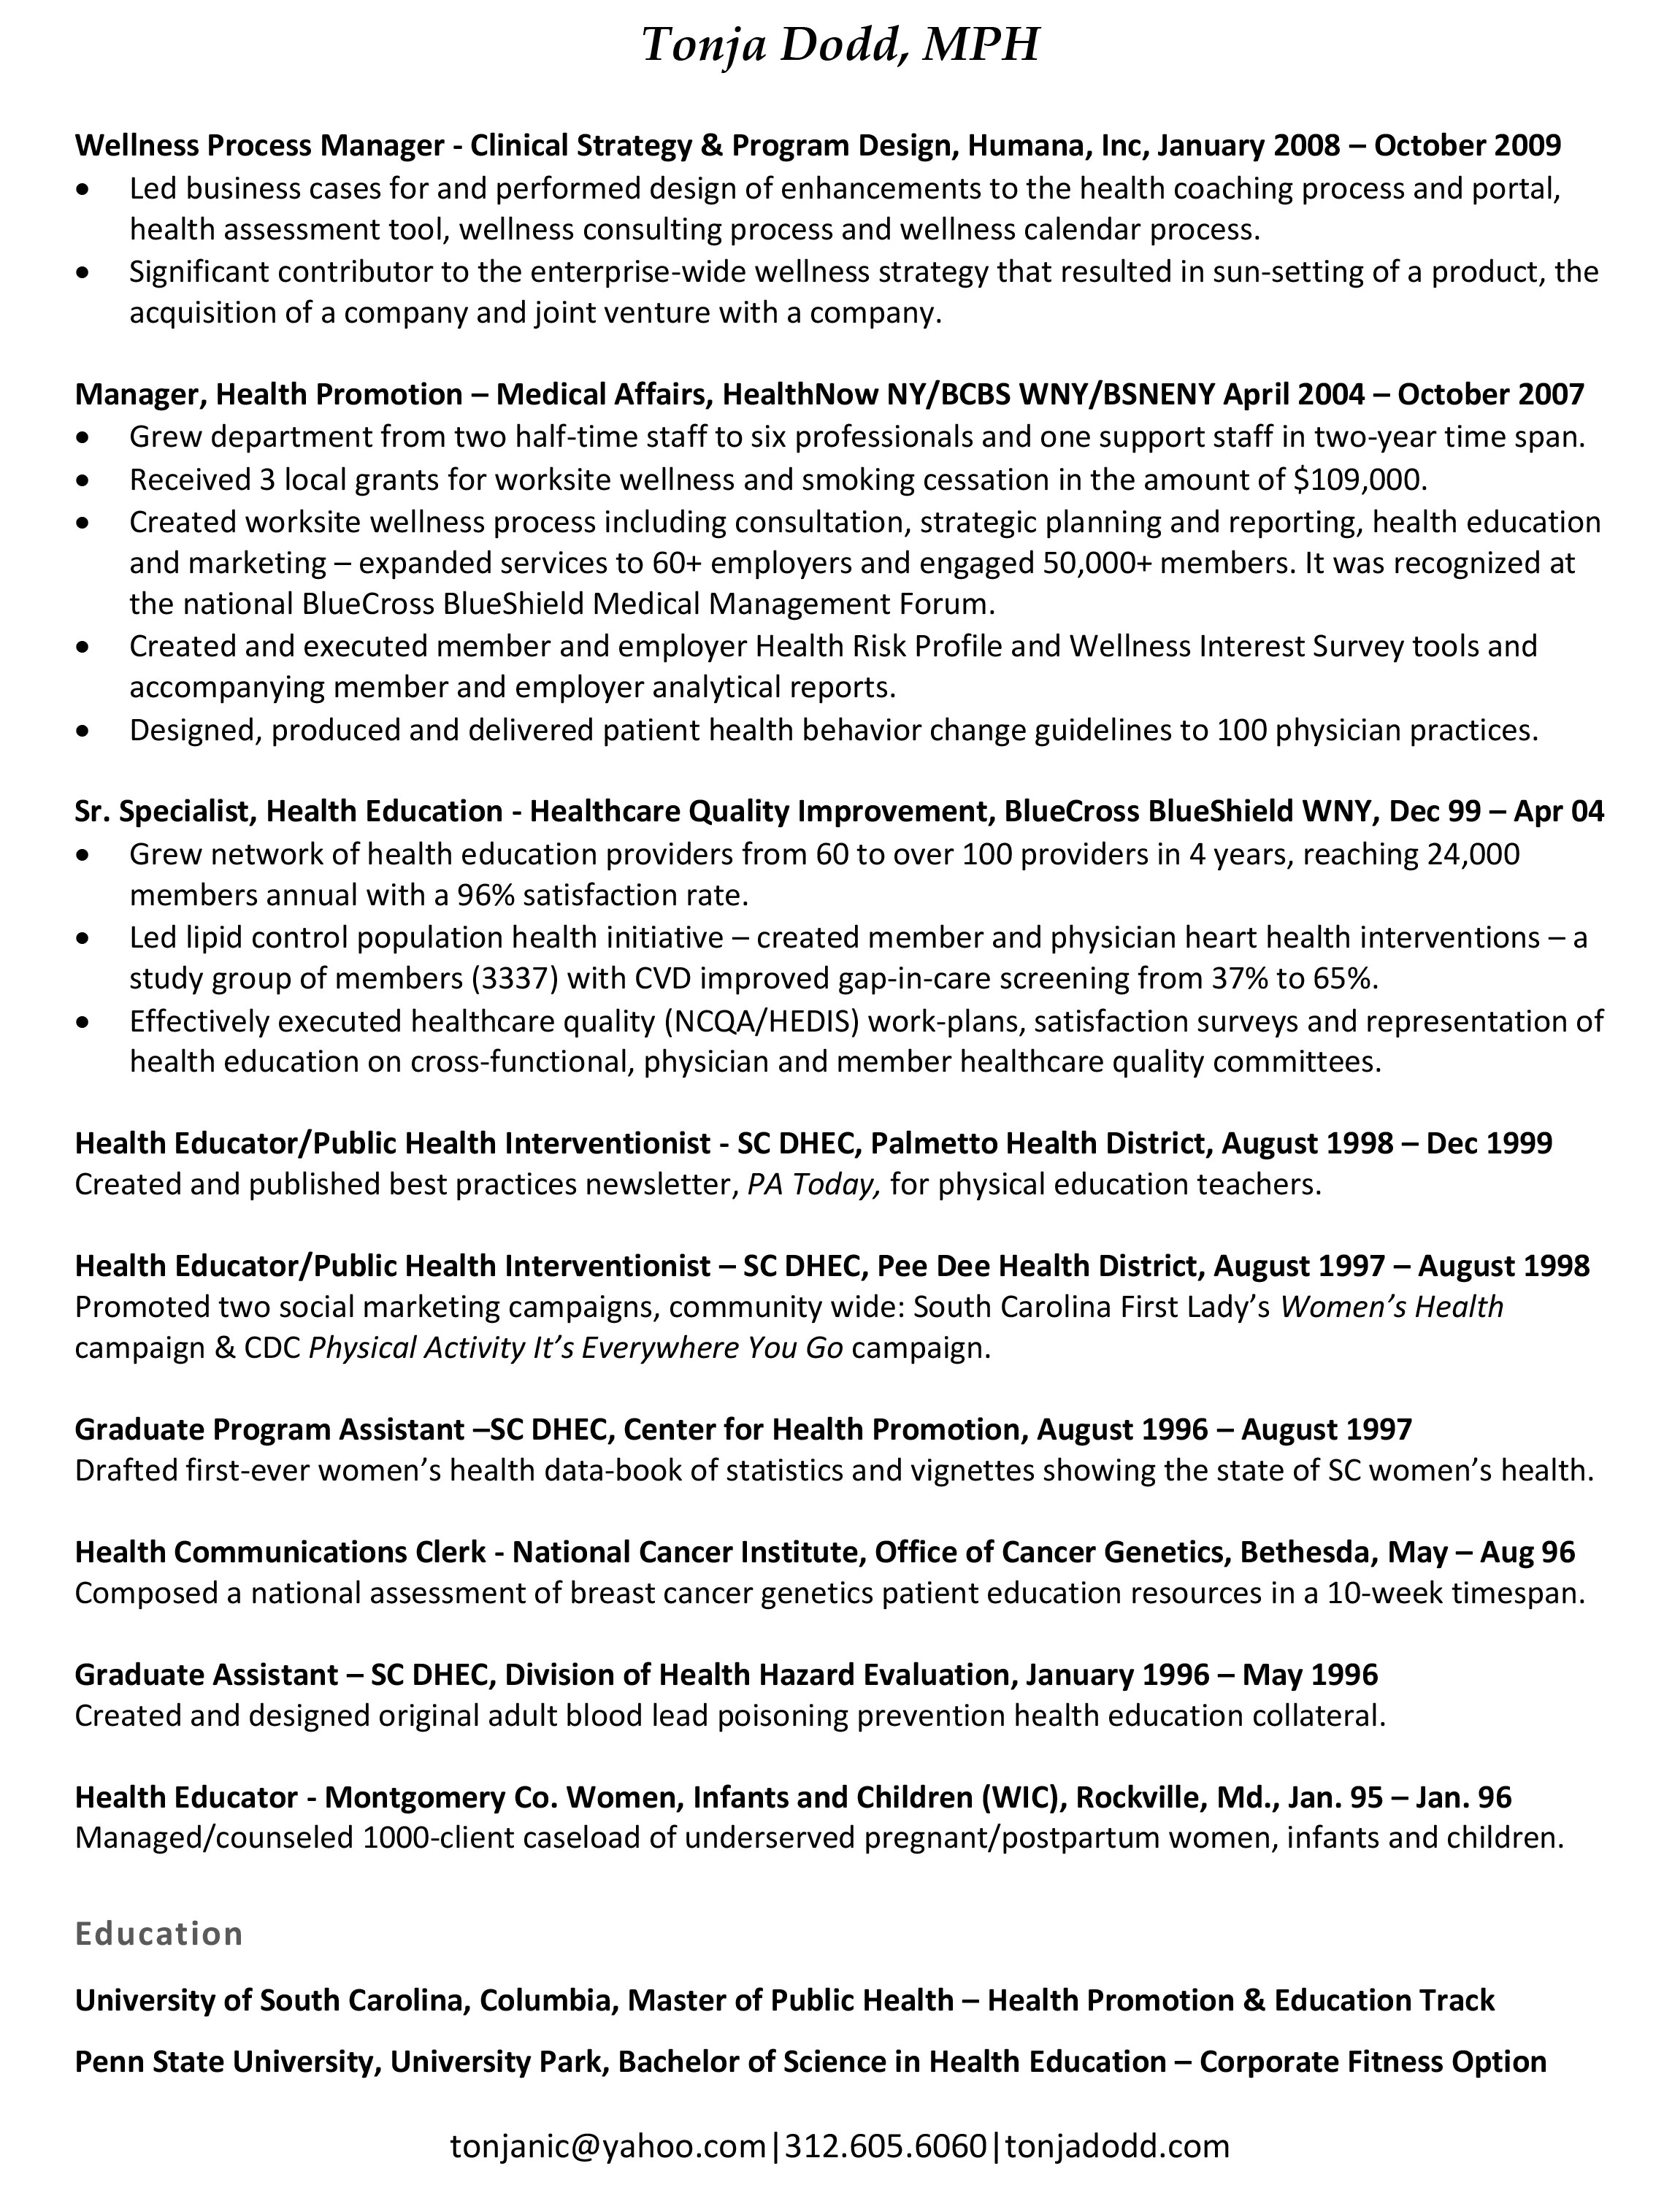 Outstanding Mph Resume Pictures - Best Student Resume Examples and ...